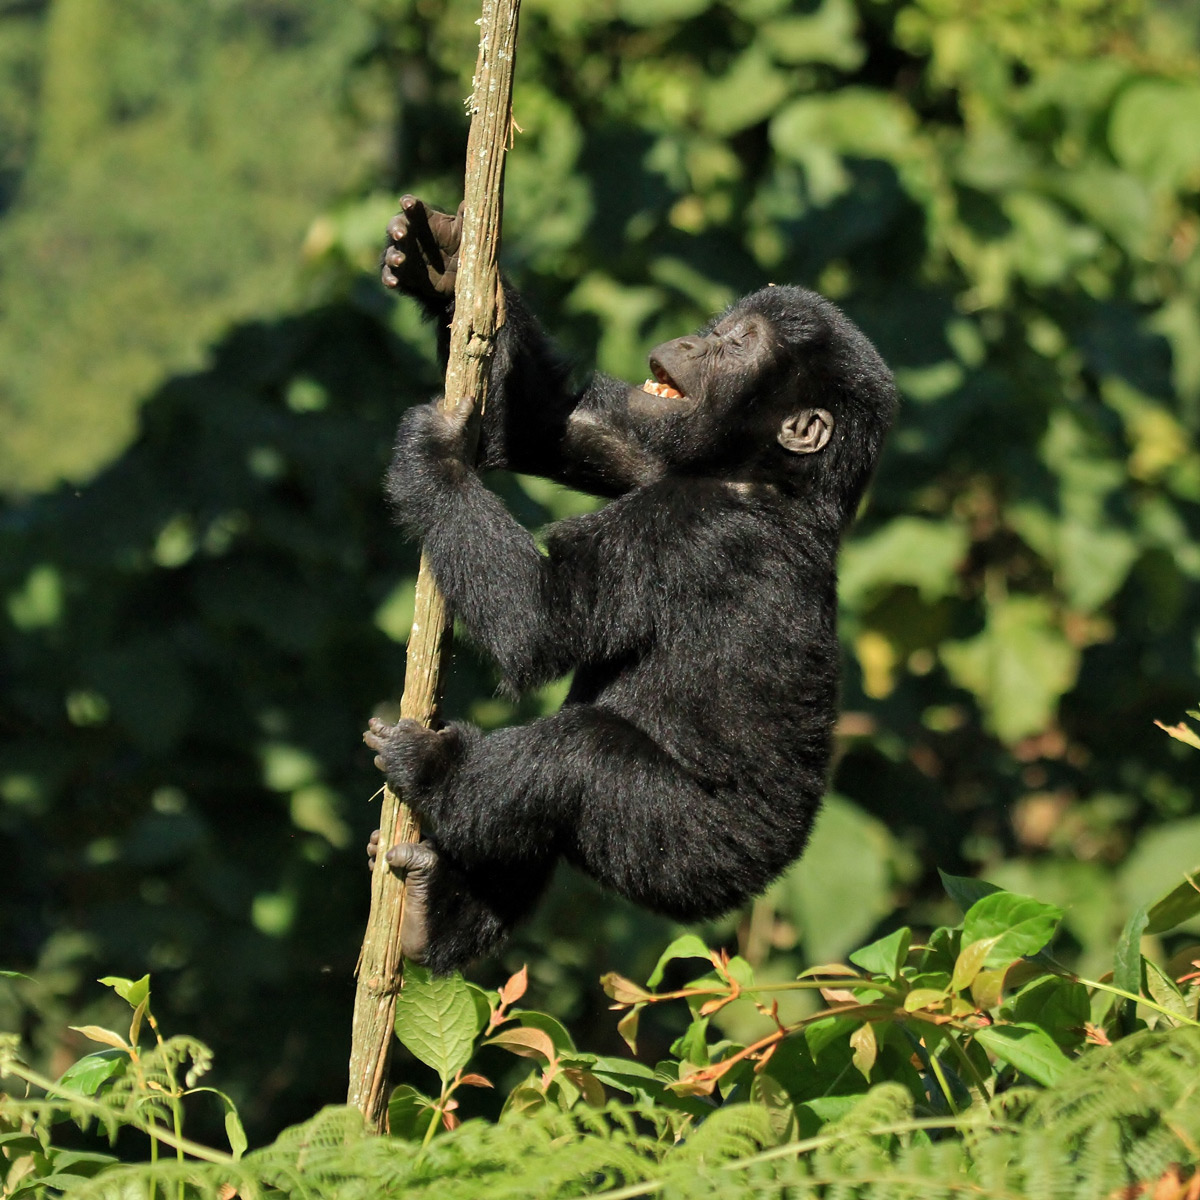 """Children of the forest"" – an infant mountain gorilla climbs a vine in Bwindi Impenetrable National Park, Uganda © Darren Colello"